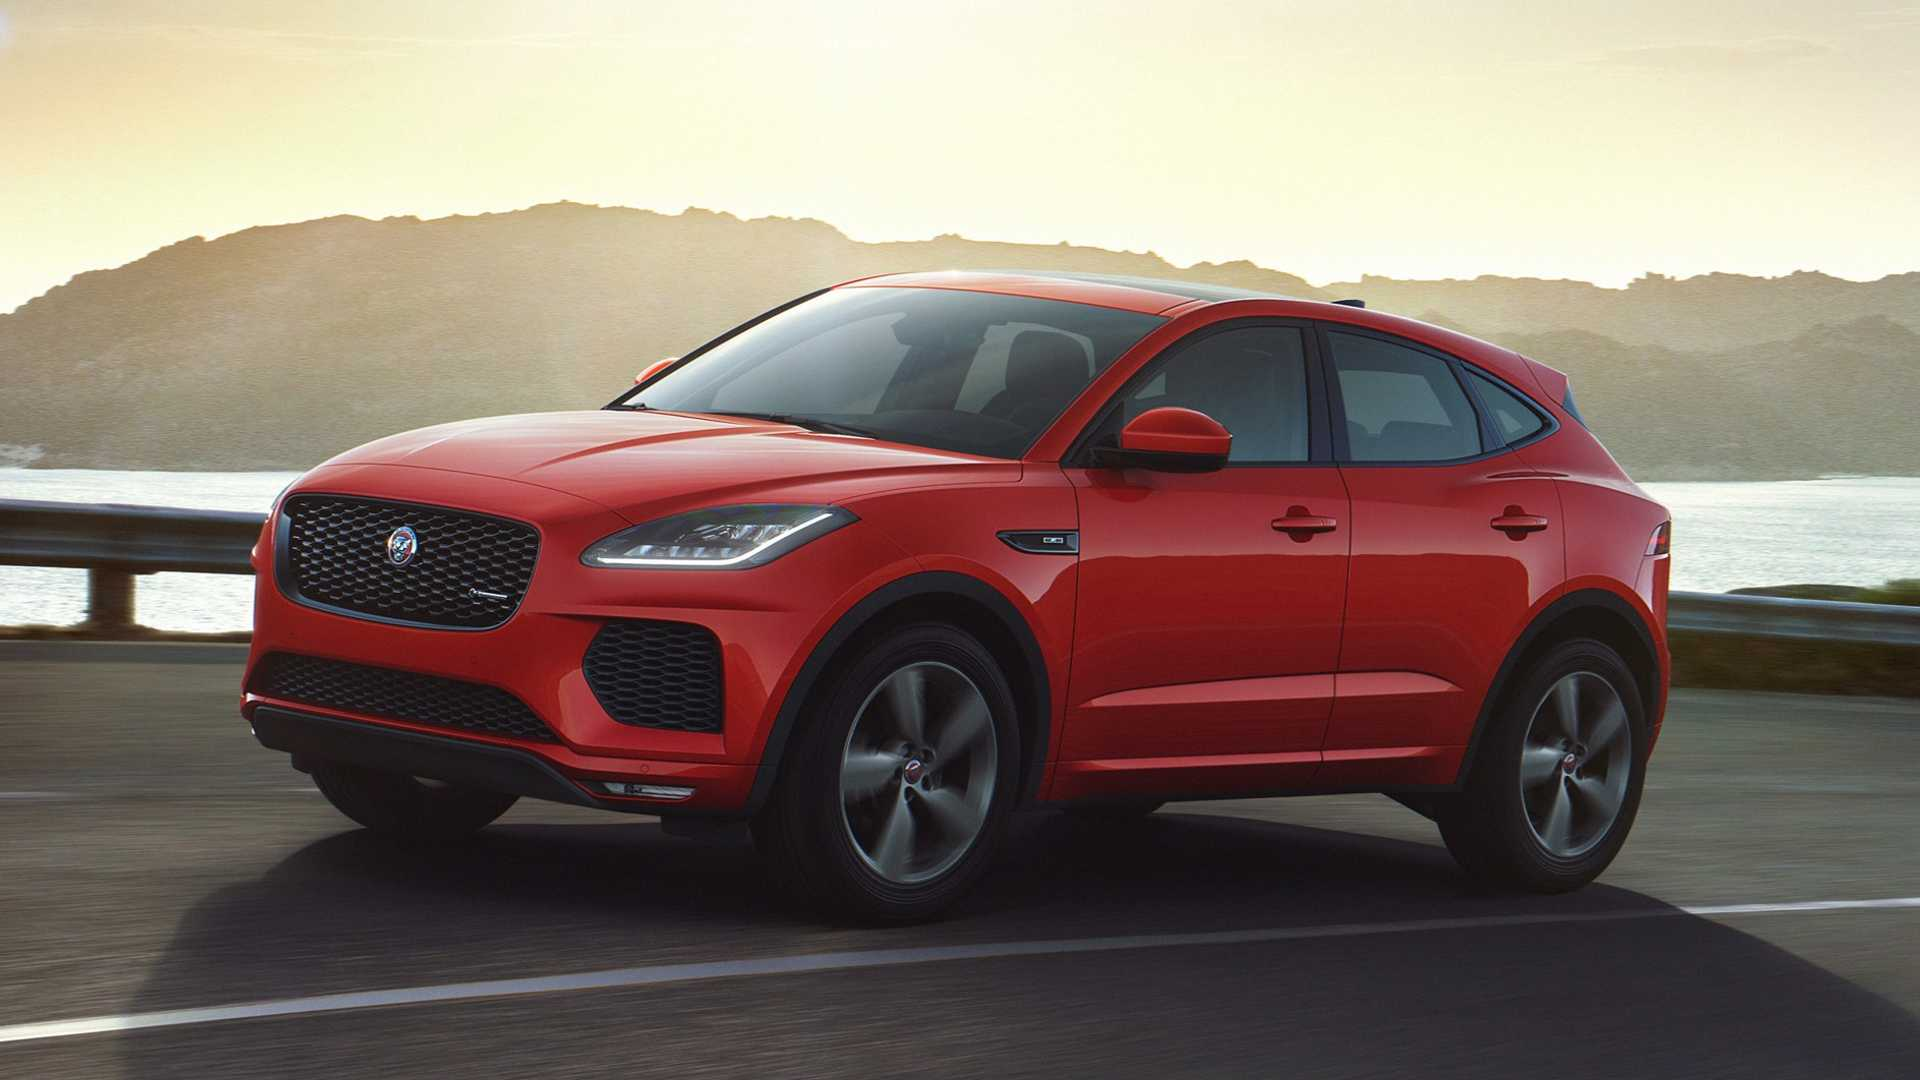 E Pace Suv Is Latest Jaguar To Get Chequered Flag Treatment